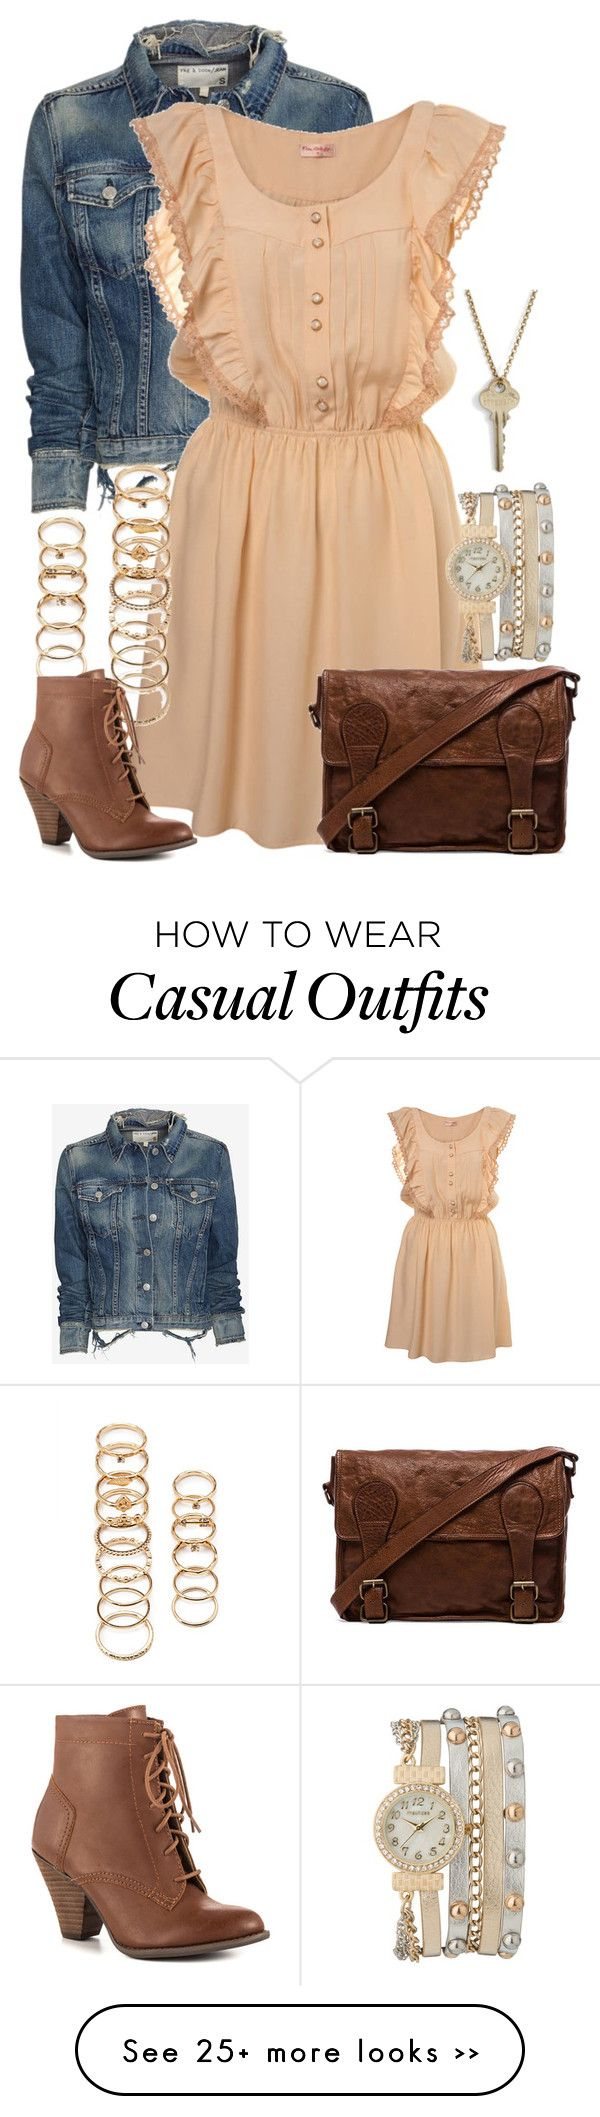 """""""Hufflepuff Casual"""" by graceeliza21 on Polyvore"""